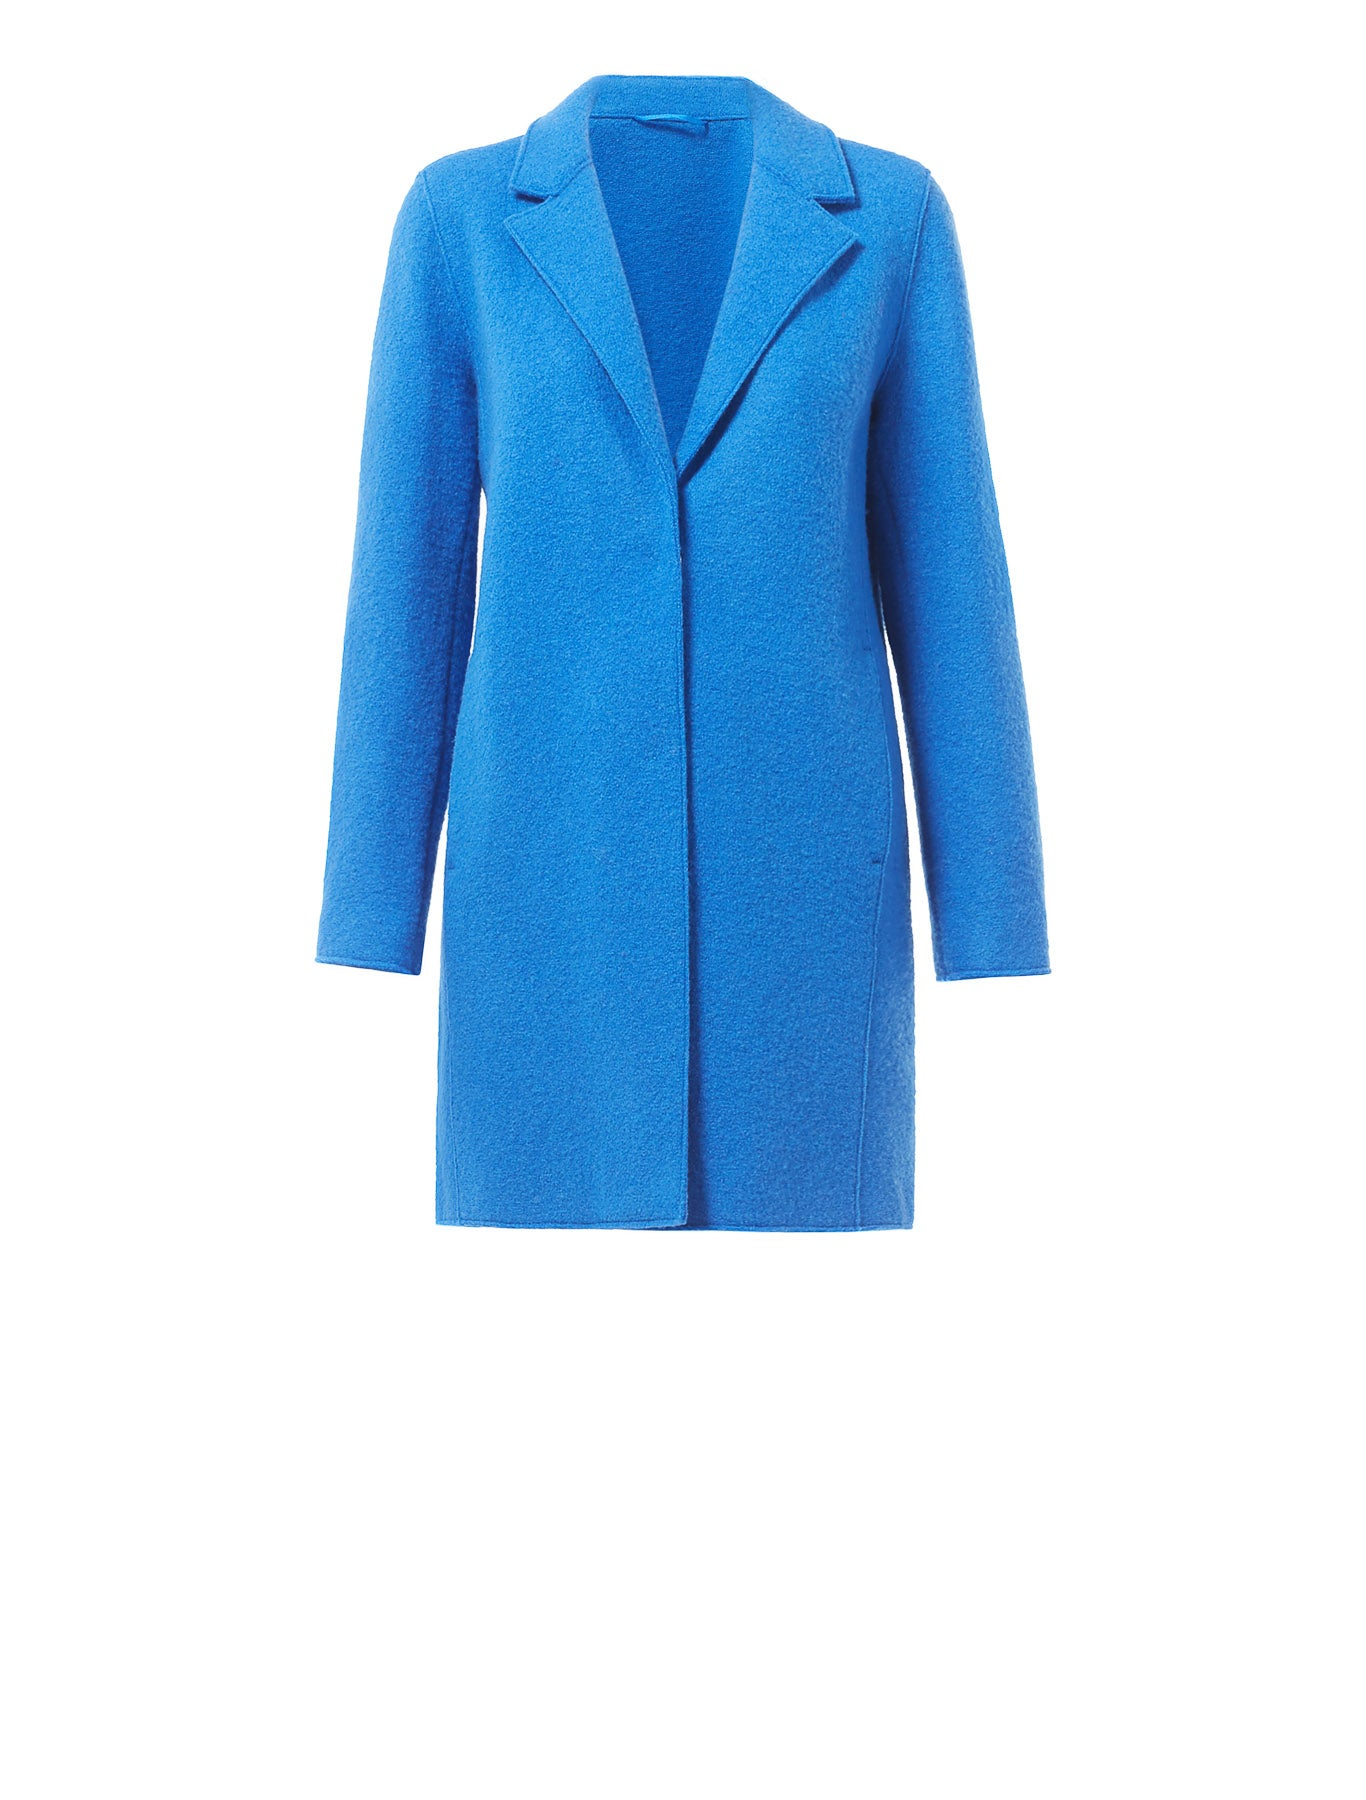 Venus Jacket in Cornflower Blue